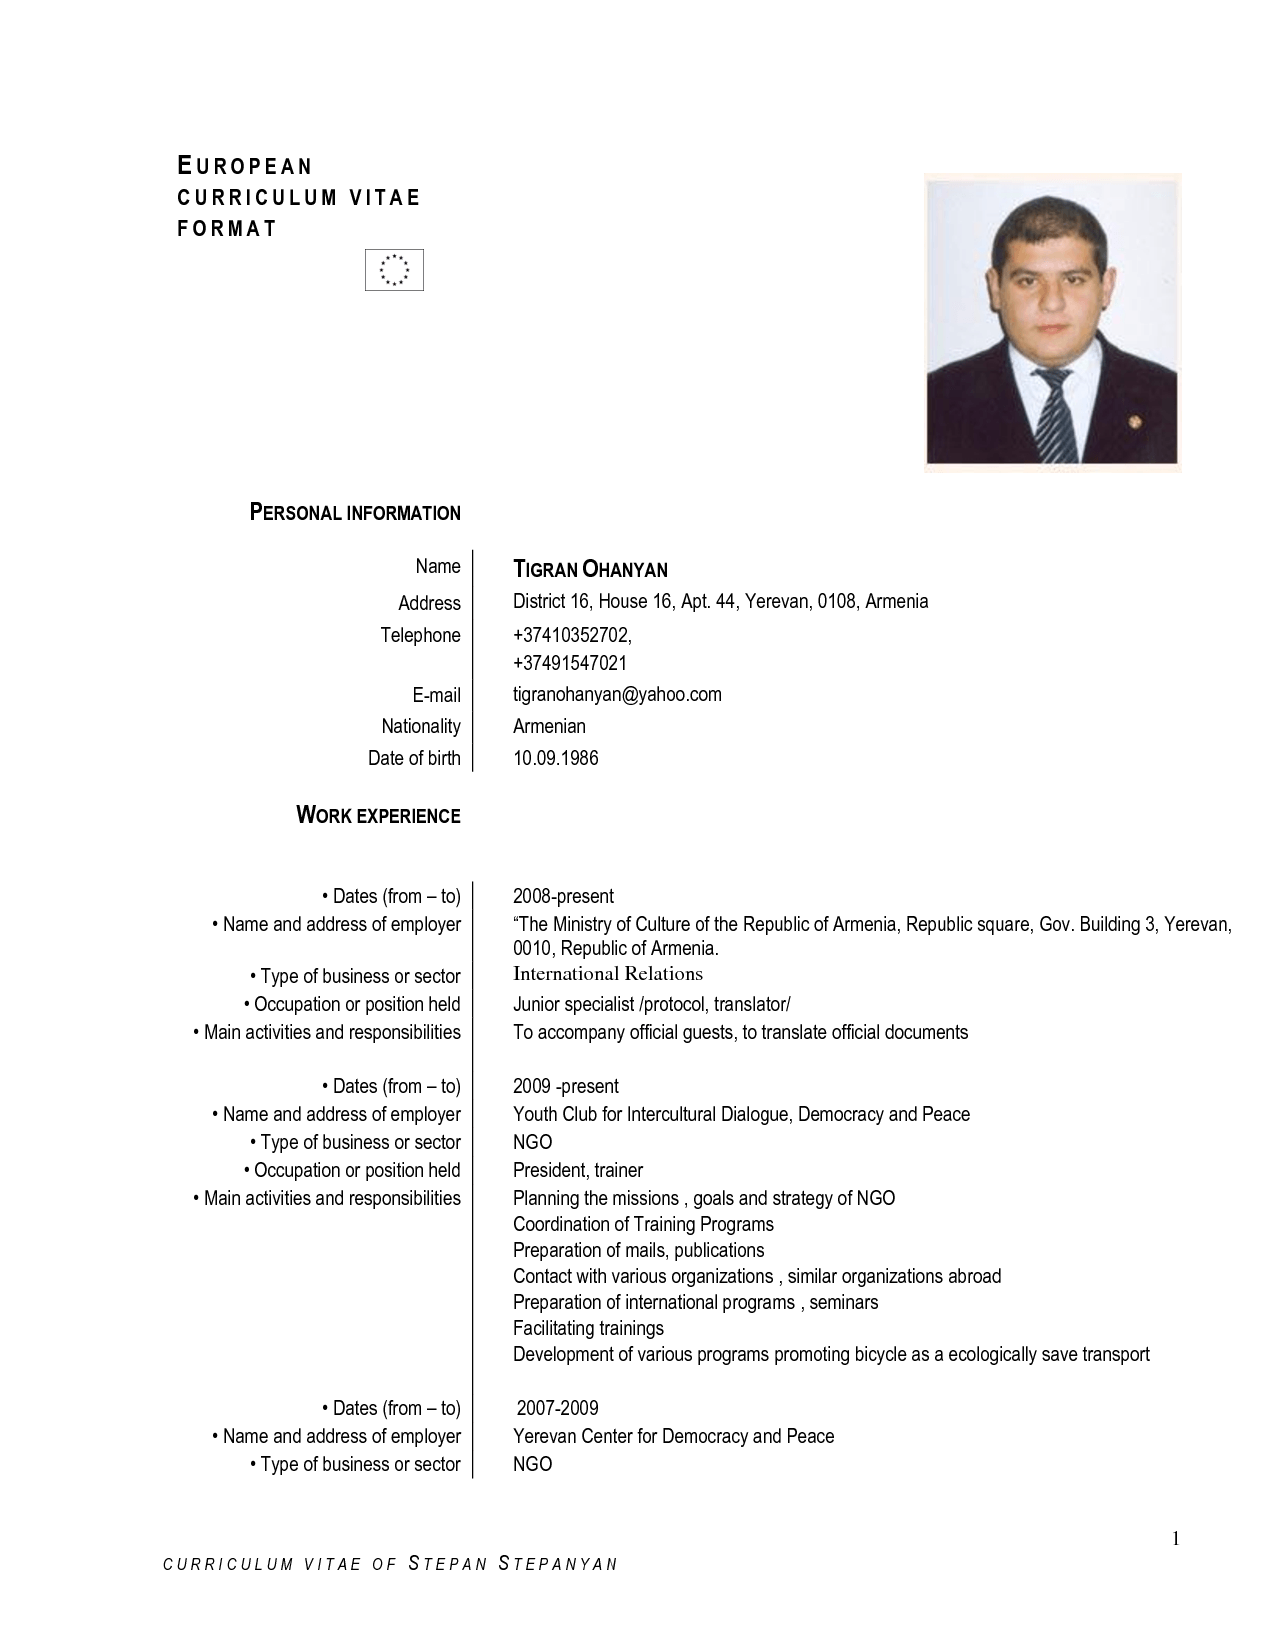 template cv europass english